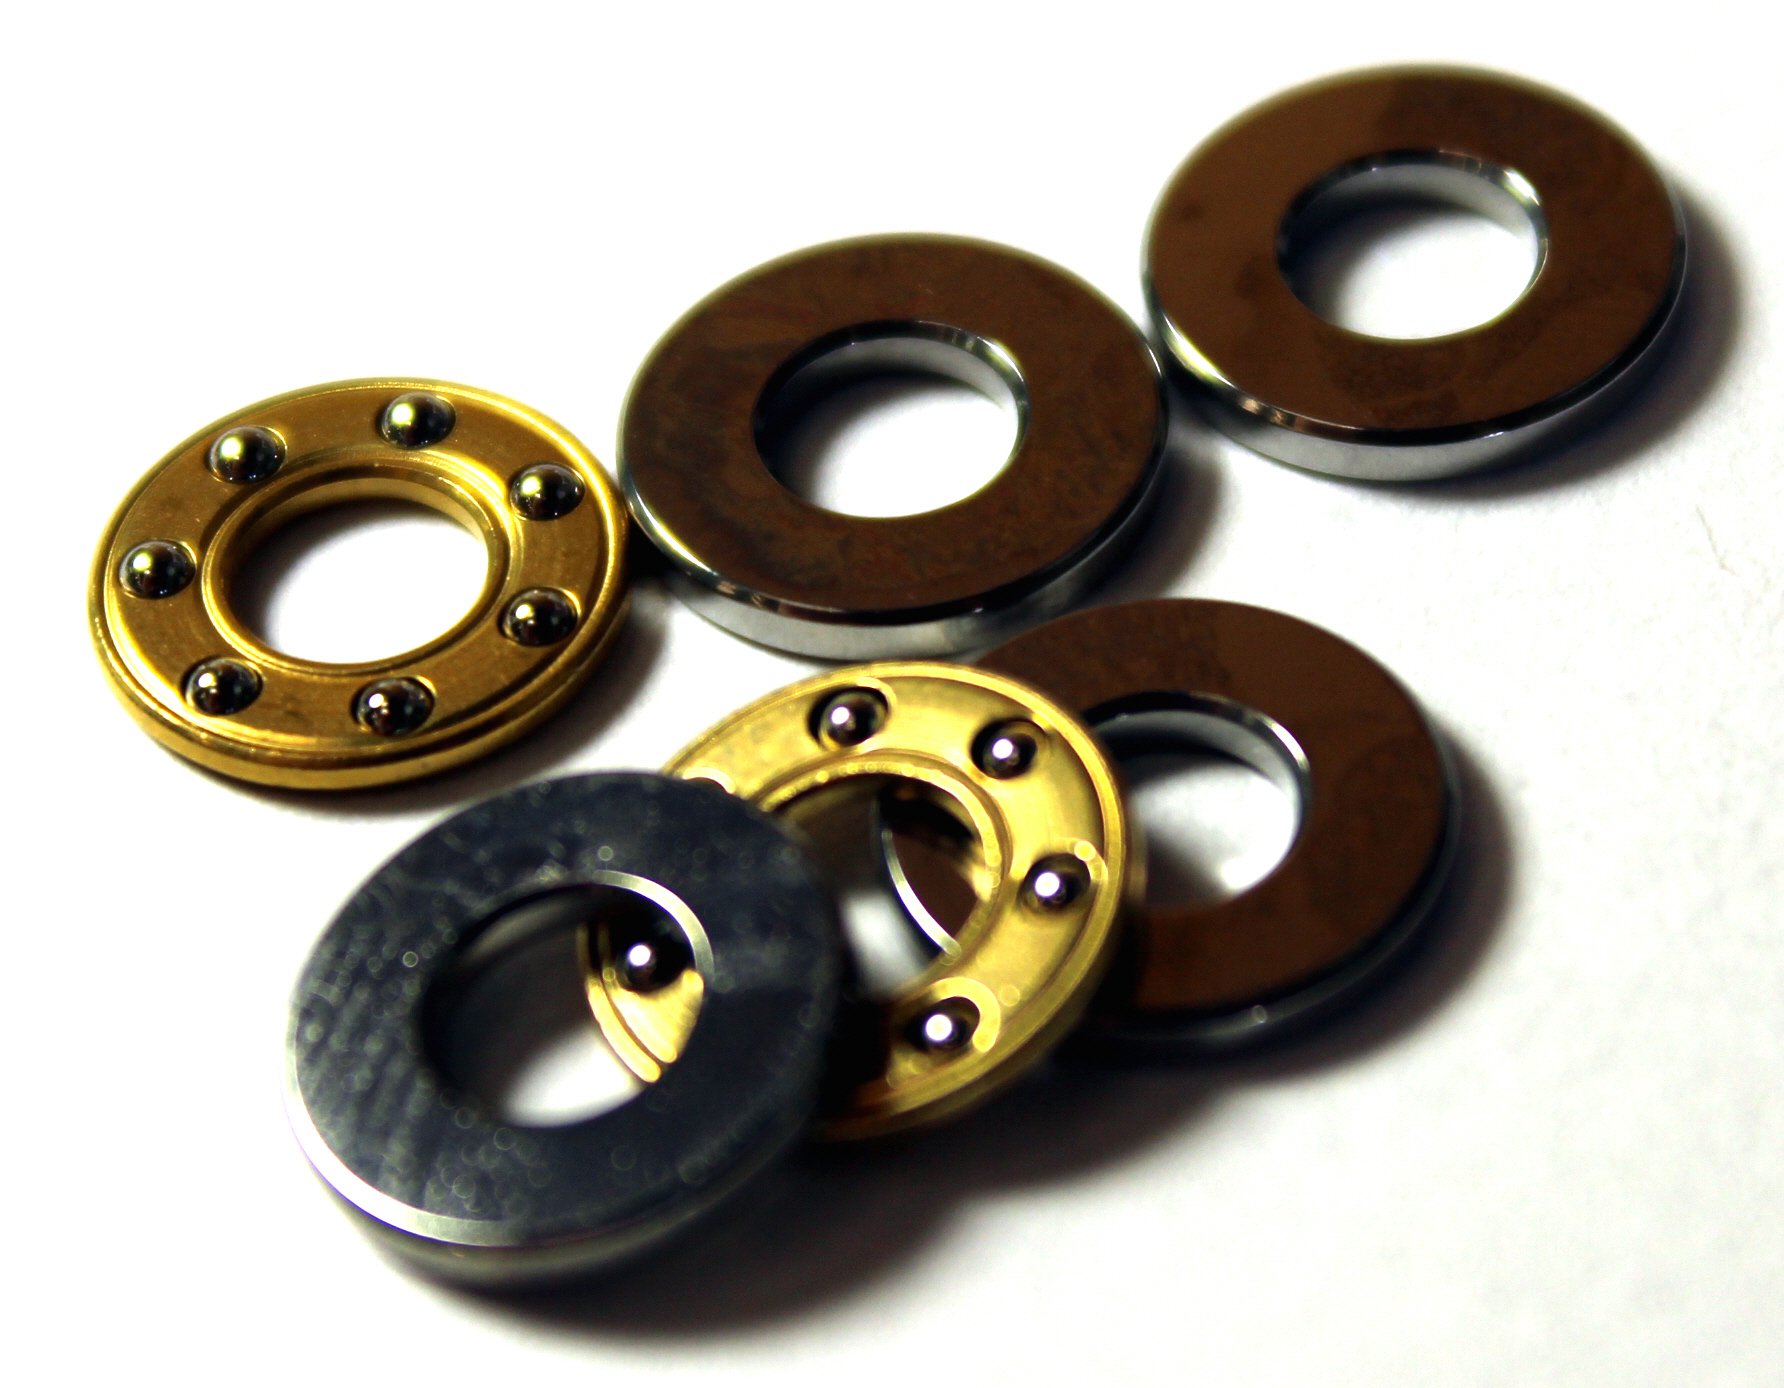 Miniature thrust bearings (or axial bearings) are available with bore sizes as small as 3mm. Miniature thrust bearings a